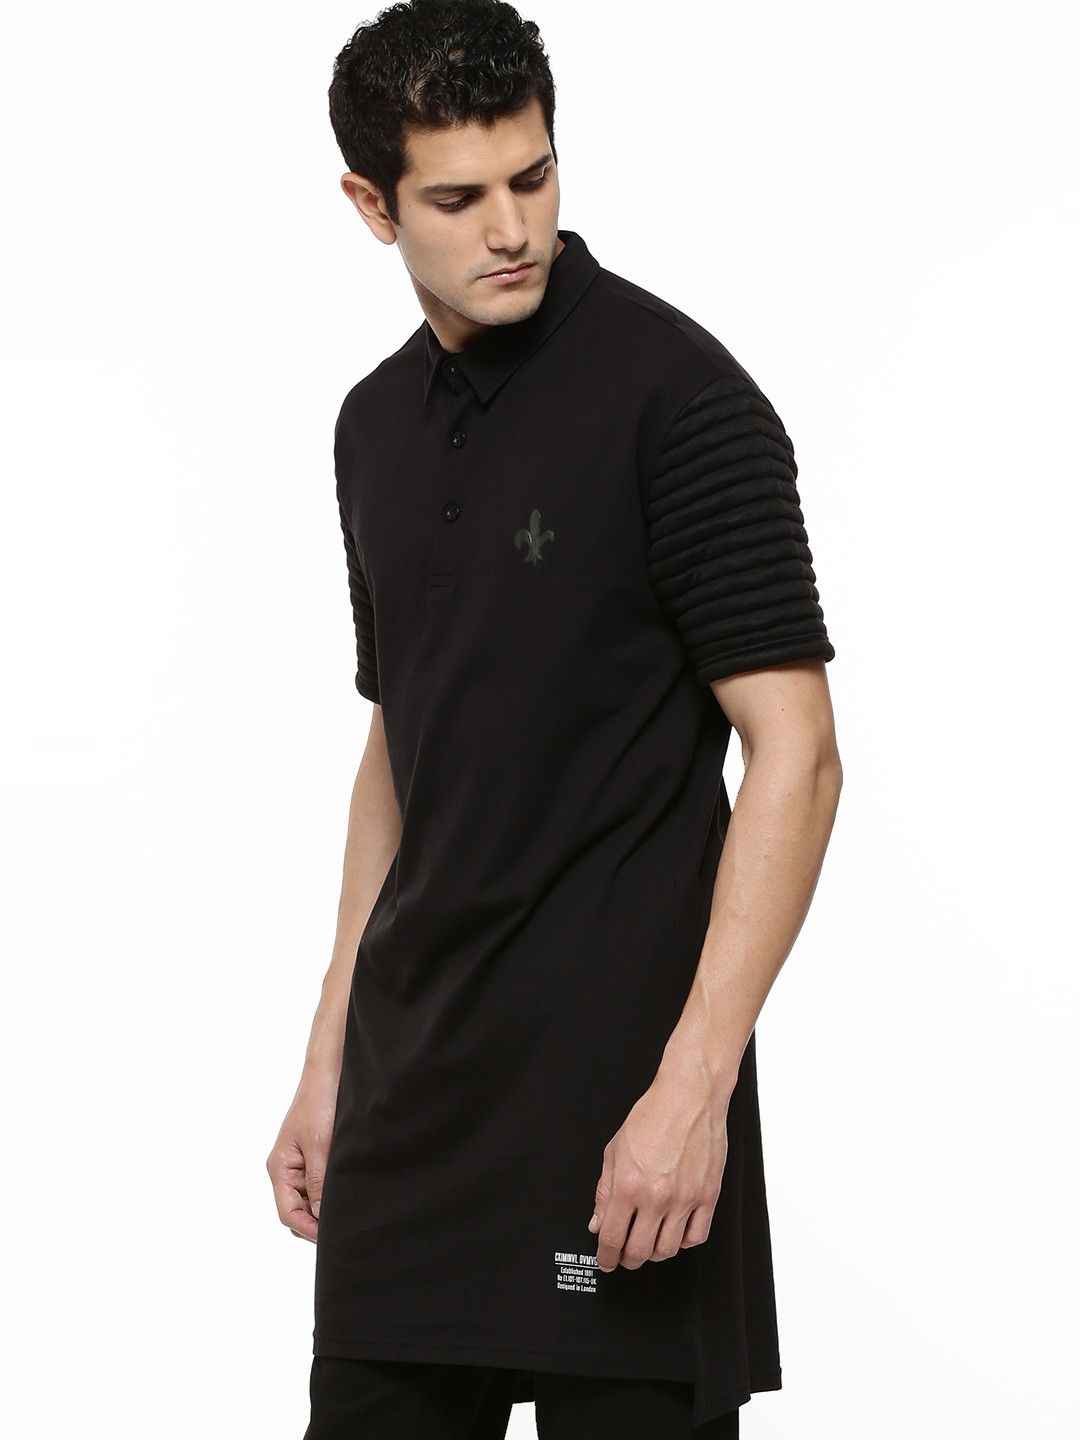 Black quilted t shirt - Criminal Damage Longline Polo Shirt With Quilted Sleeves